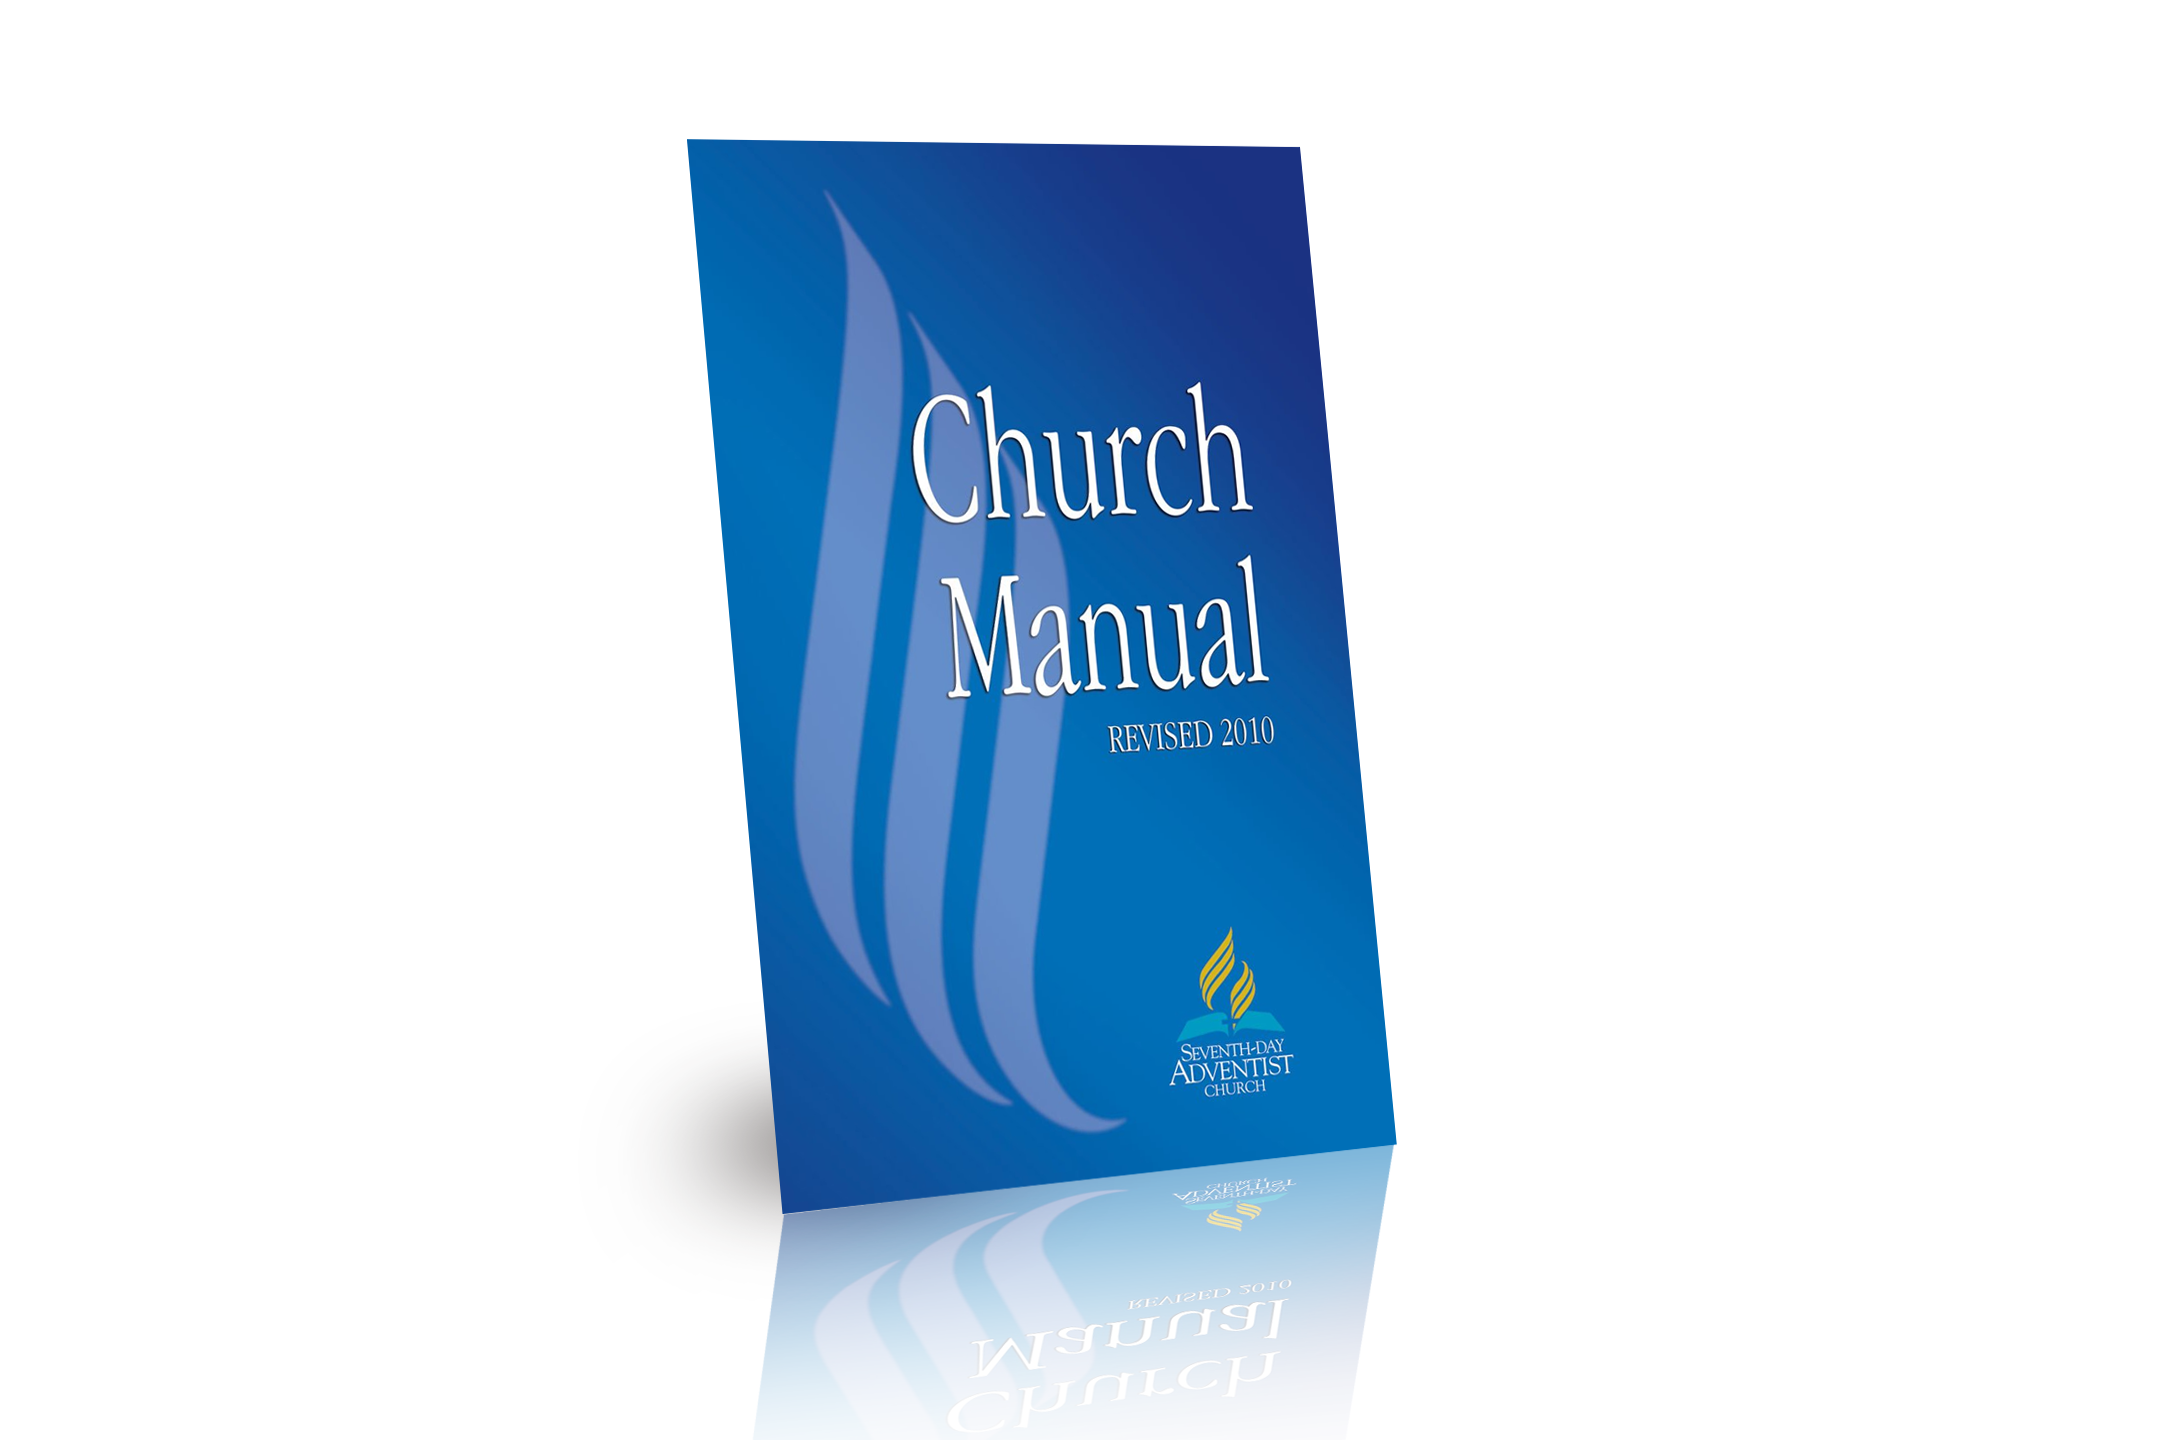 will there be discussion or rubberstamping of church manual changes rh spectrummagazine org seventh day adventist church manual 2018 seventh day adventist church manual download